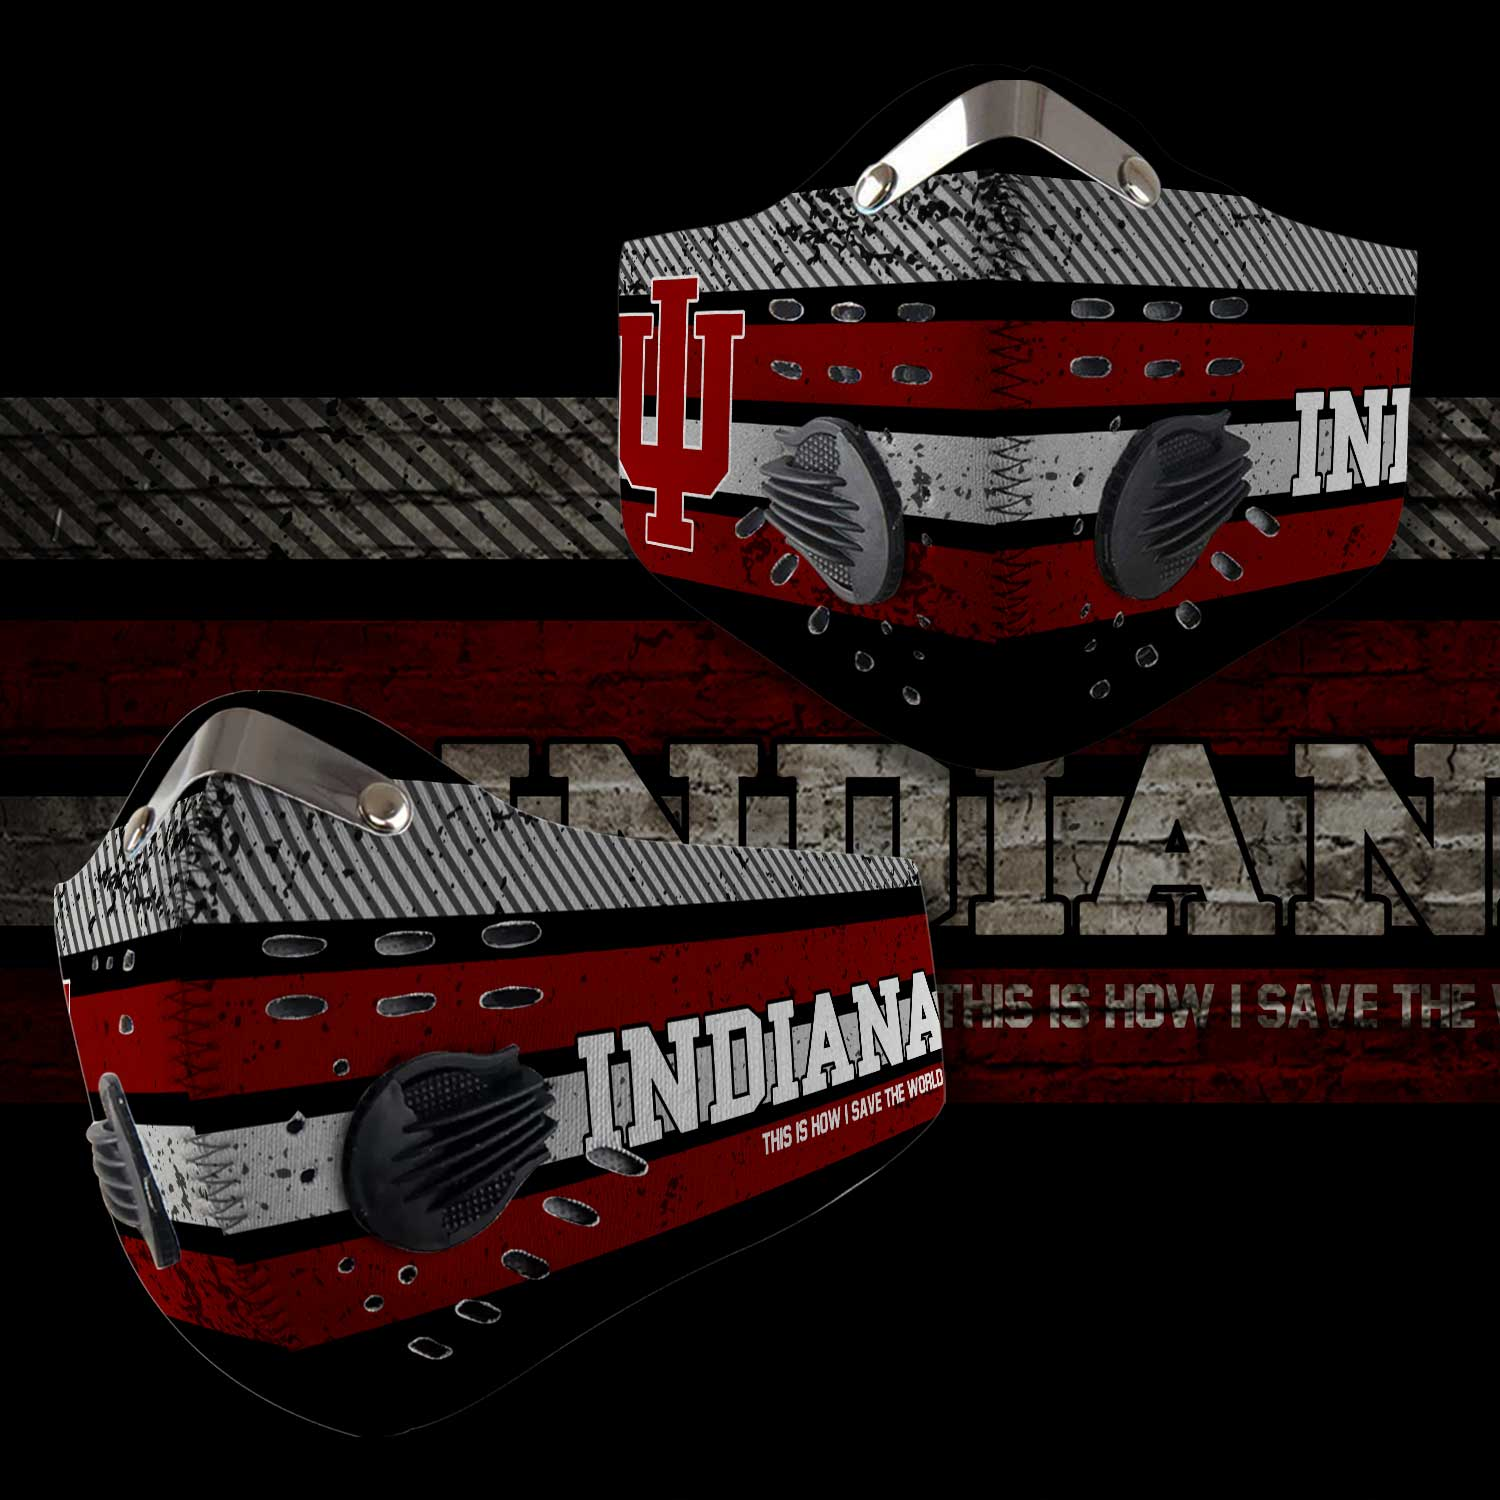 Indiana hoosiers this is how i save the world carbon filter face mask 2